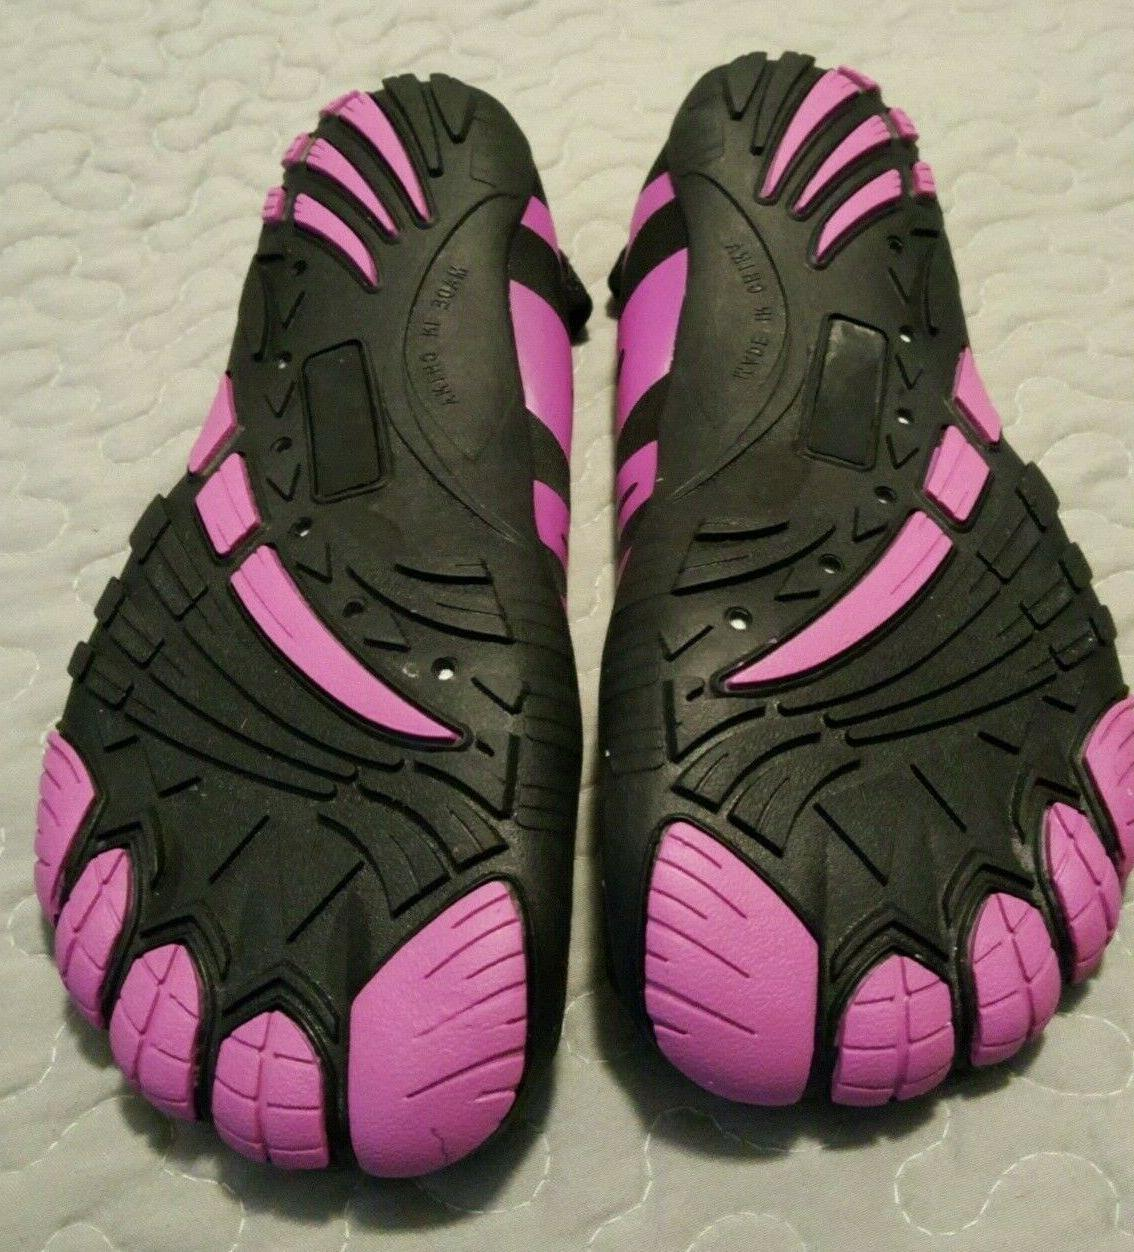 hiitave Shoes Quick Dry size 6